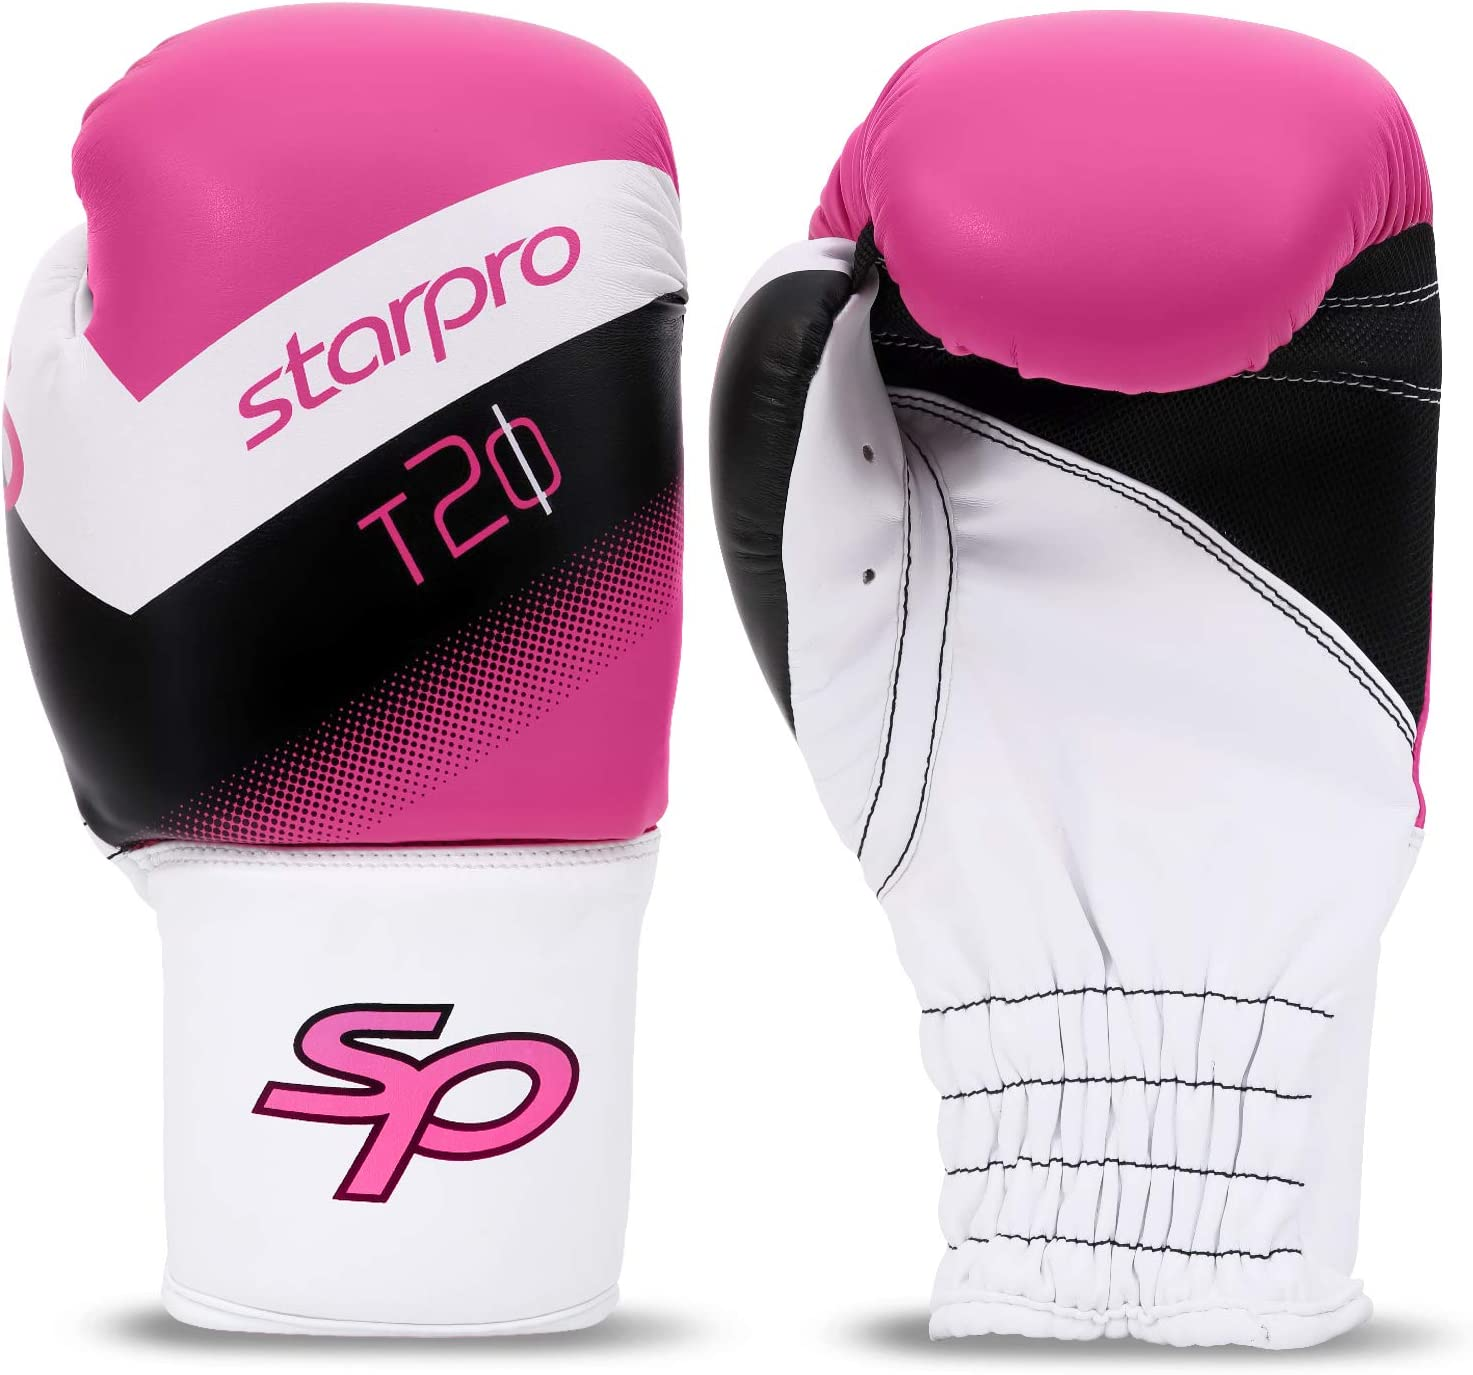 Synthetic Leather Men /& Women Starpro Kids Boxing Gloves Training Good for Youth Punch Bag Focus Pads Punching Junior 6oz 8oz Mitts for Sparring Fighting /& Kickboxing Muay Thai